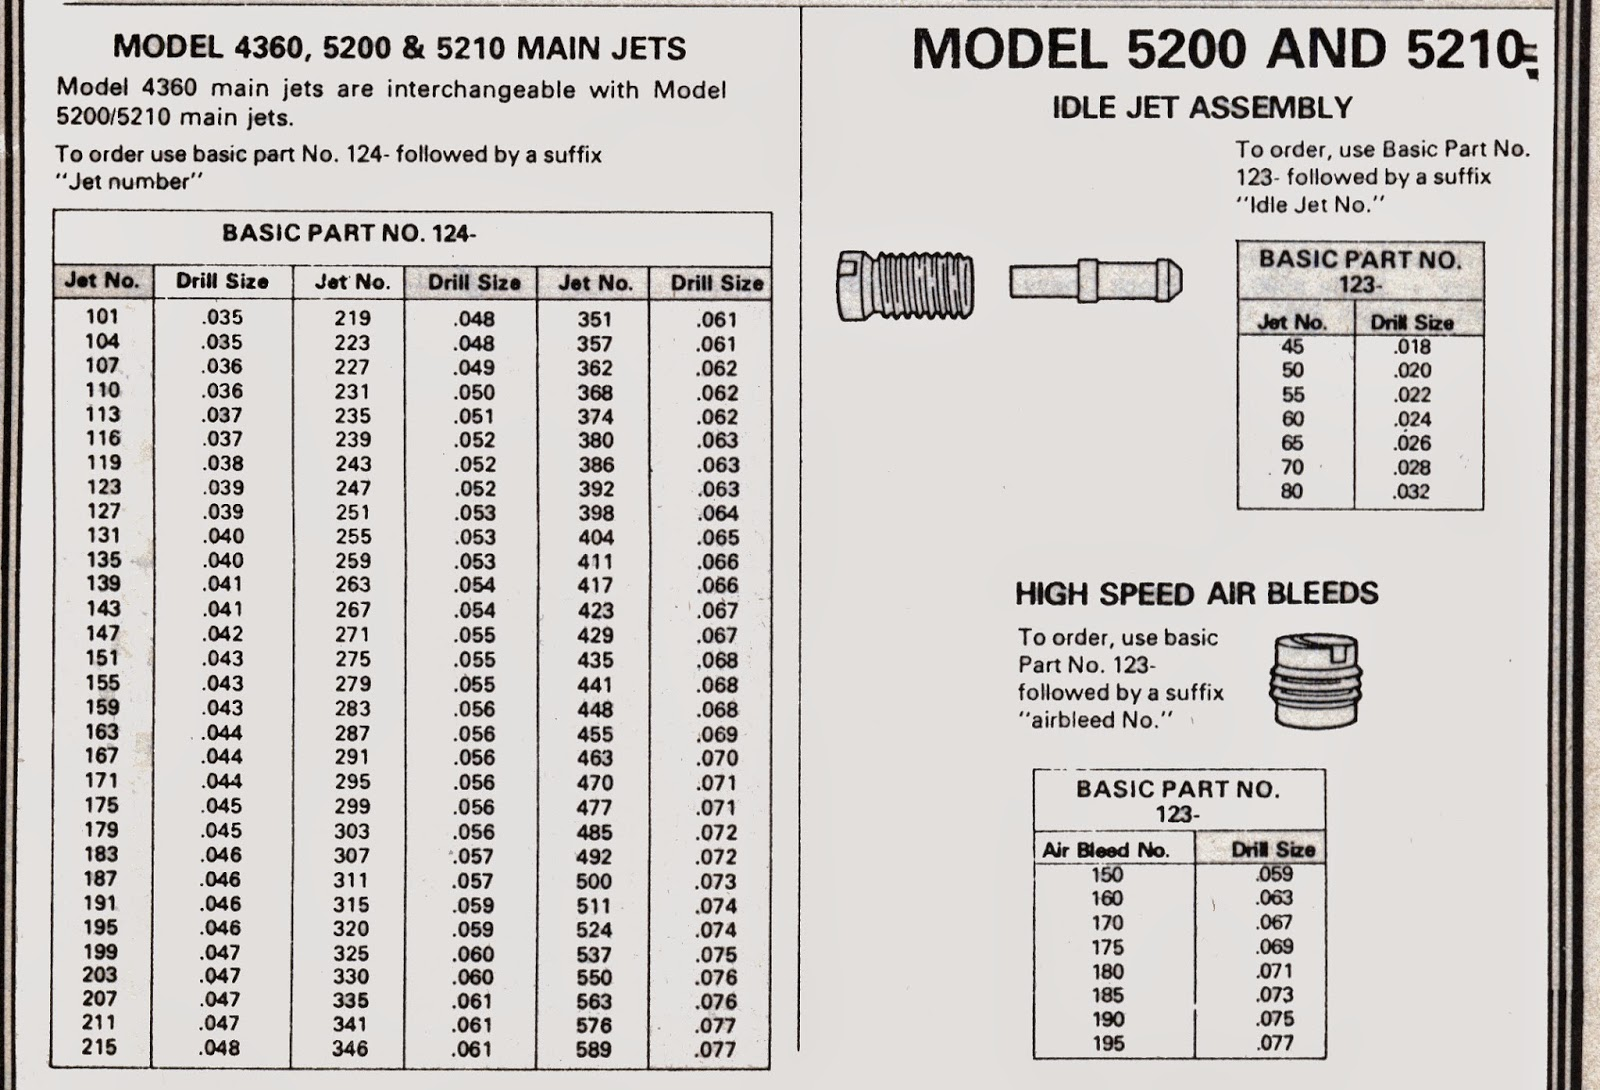 Tech Series Holley Main Jet Size Chart Drill Air Bleed List